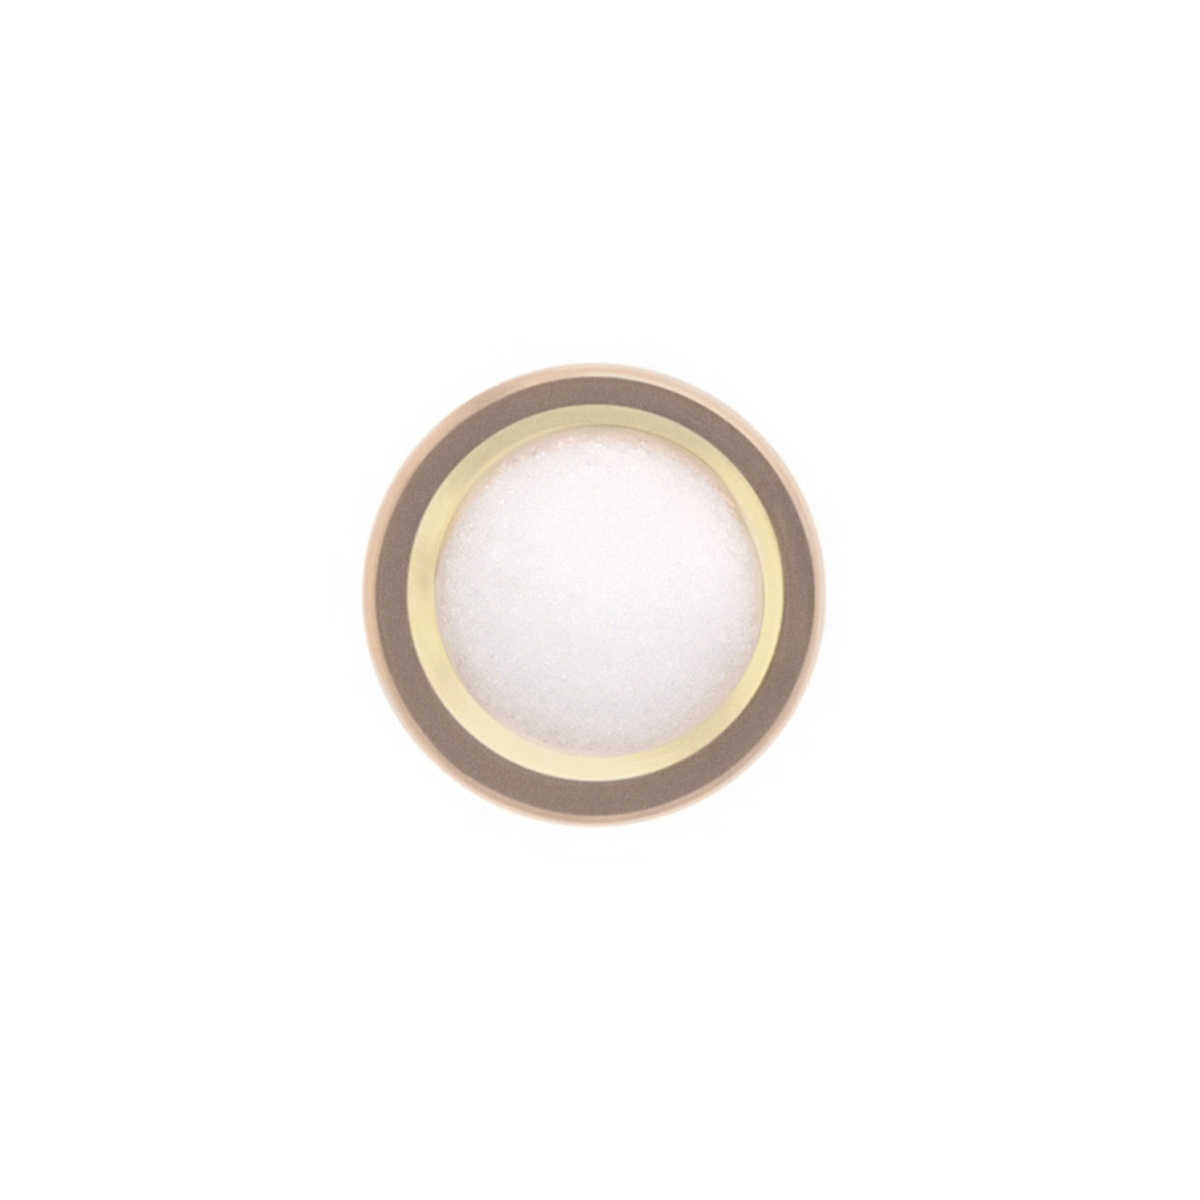 PEARL LUMINOUS PIP BEZEL INSERT PIP FOR ROLEX SUBMARINER 5508,5513 GOLD USA